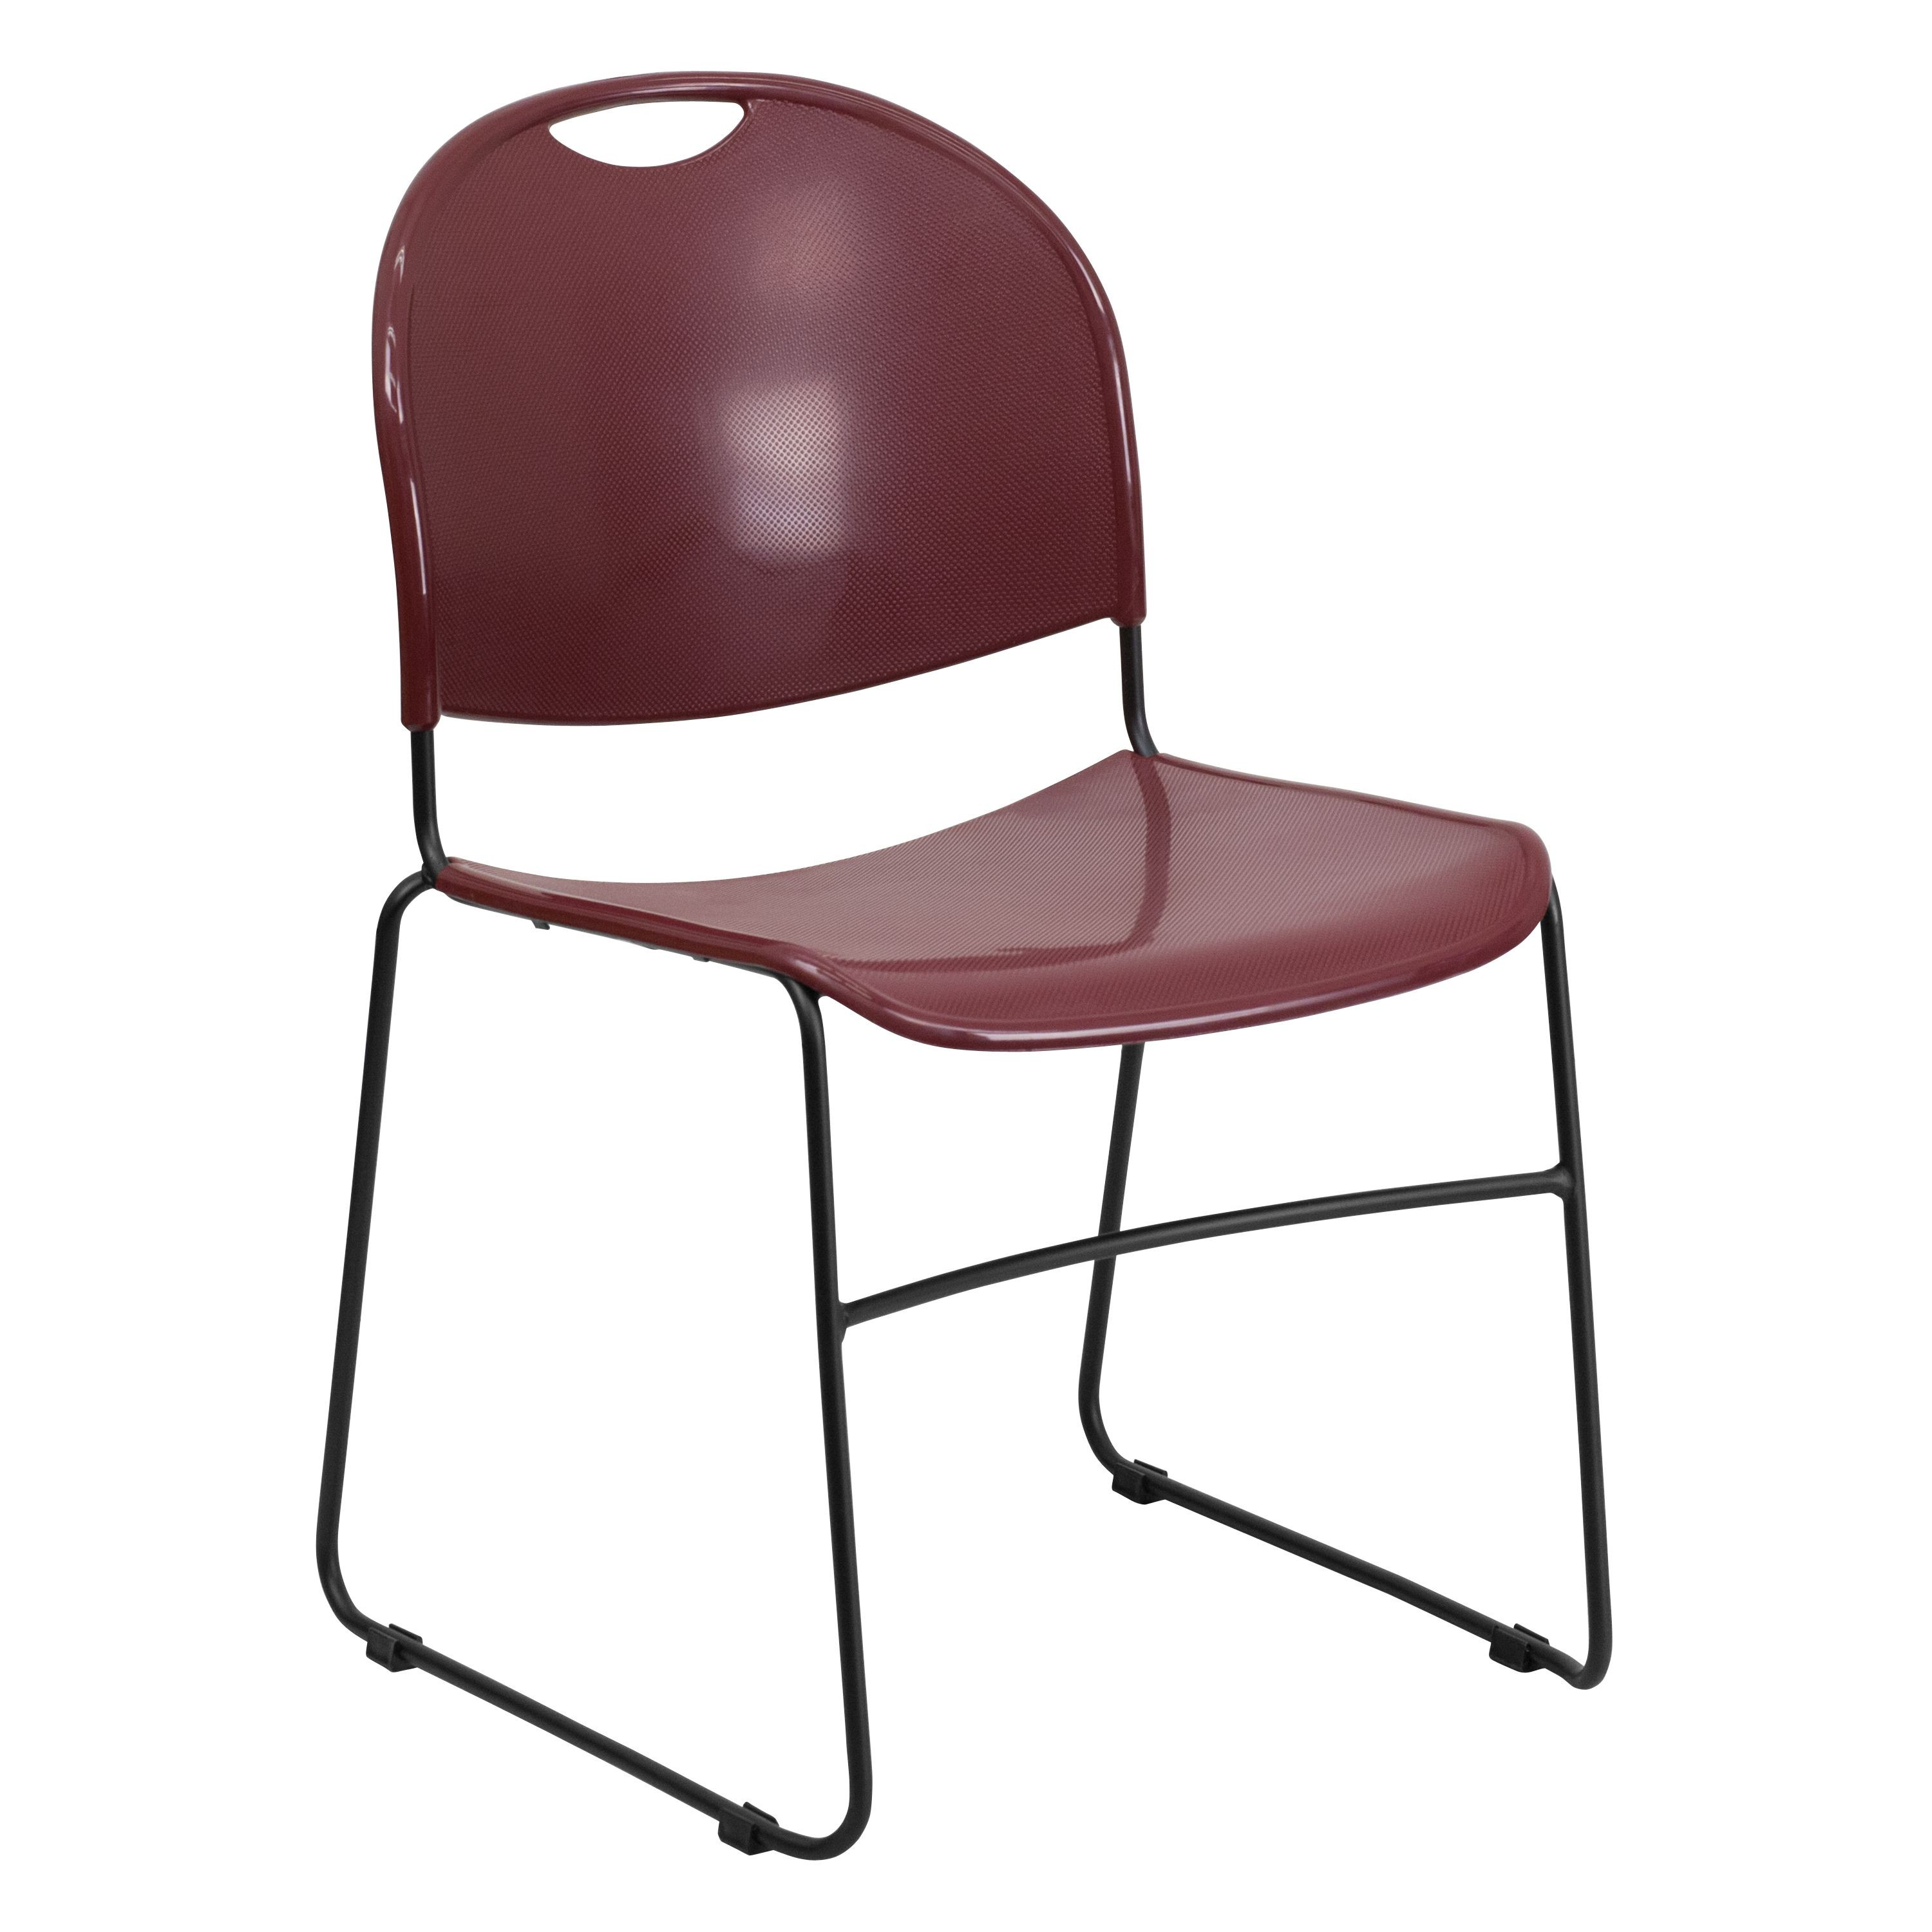 Flash Furniture rut-188-by-gg HERCULES Series 880 Lb. Capacity Burgundy Ultra Compact Stack Chair with Black Frame